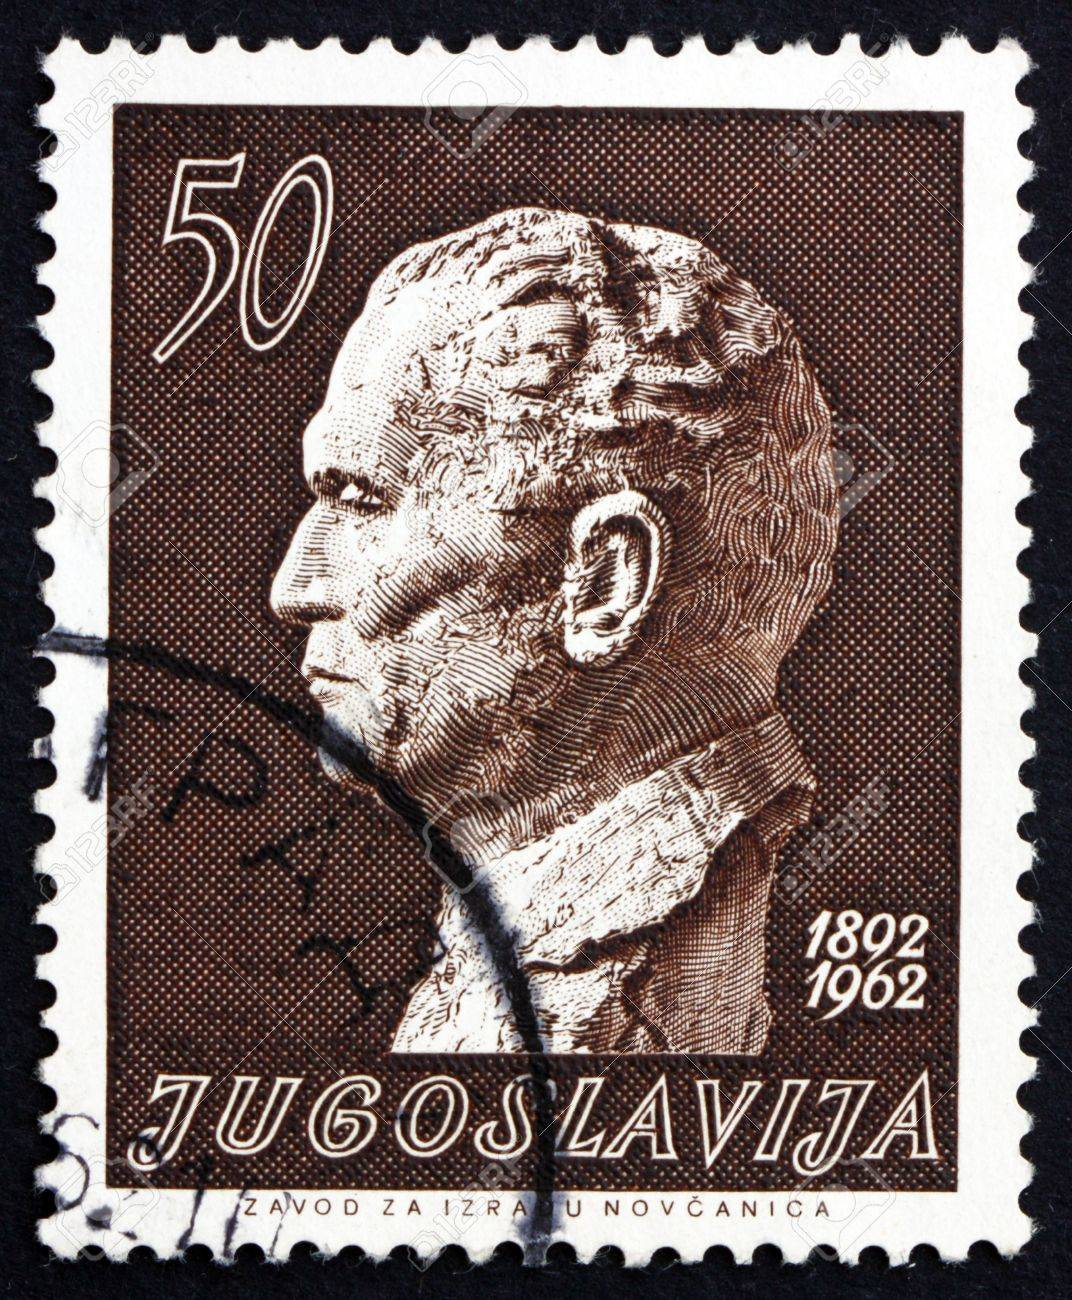 YUGOSLAVIA - CIRCA 1962: a stamp printed in the Yugoslavia shows Marshal Tito by Augustincic, Josip Broz Tito, 1st President of Yugoslavia, circa 1962 Stock Photo - 19168995